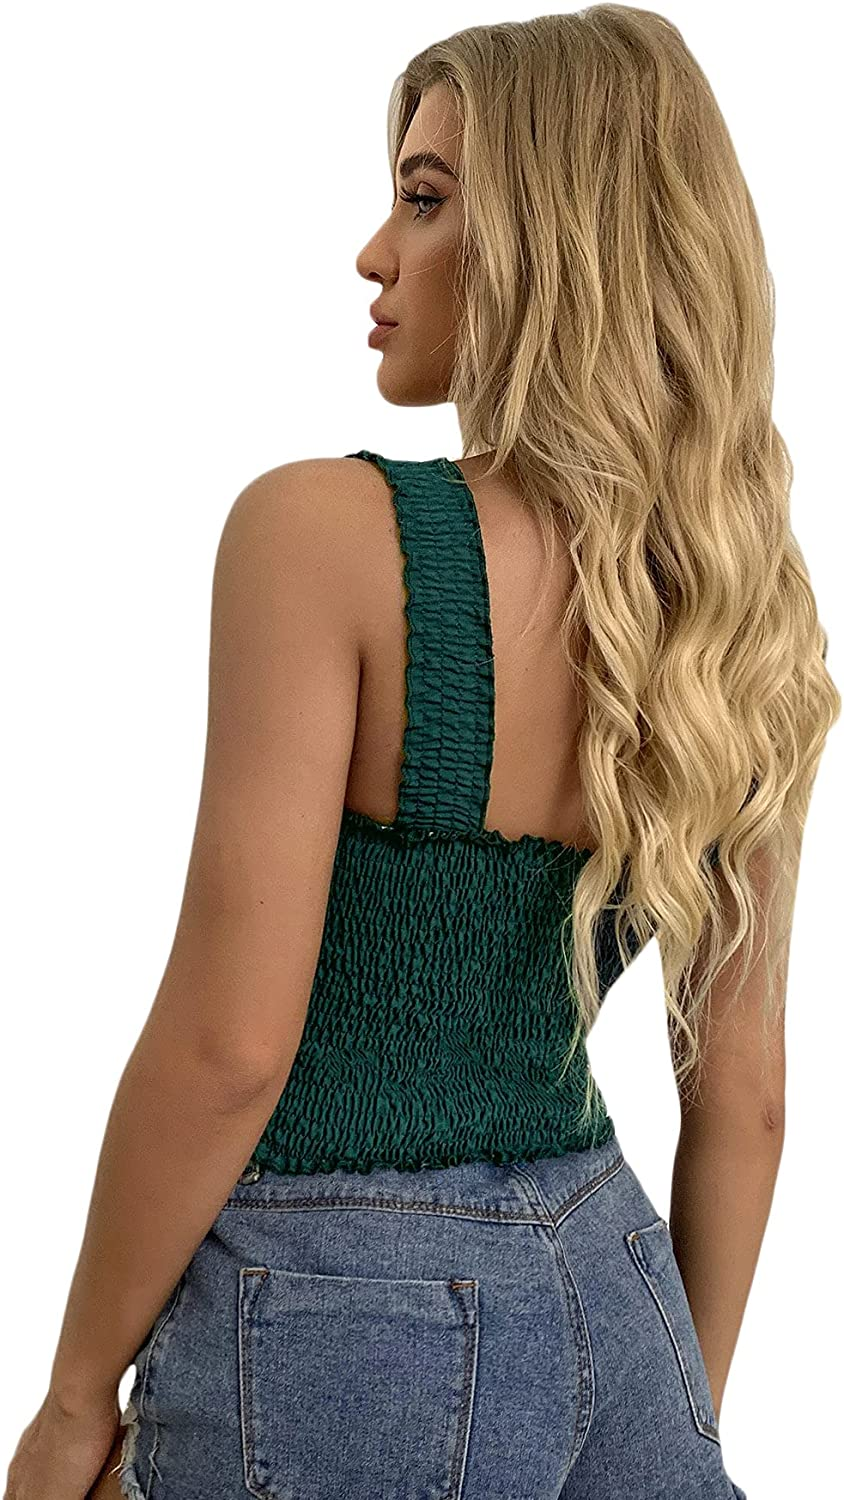 SheIn Women's Frill Smocked Sleeveless Crop Cami Tanks Shirred Strappy Top